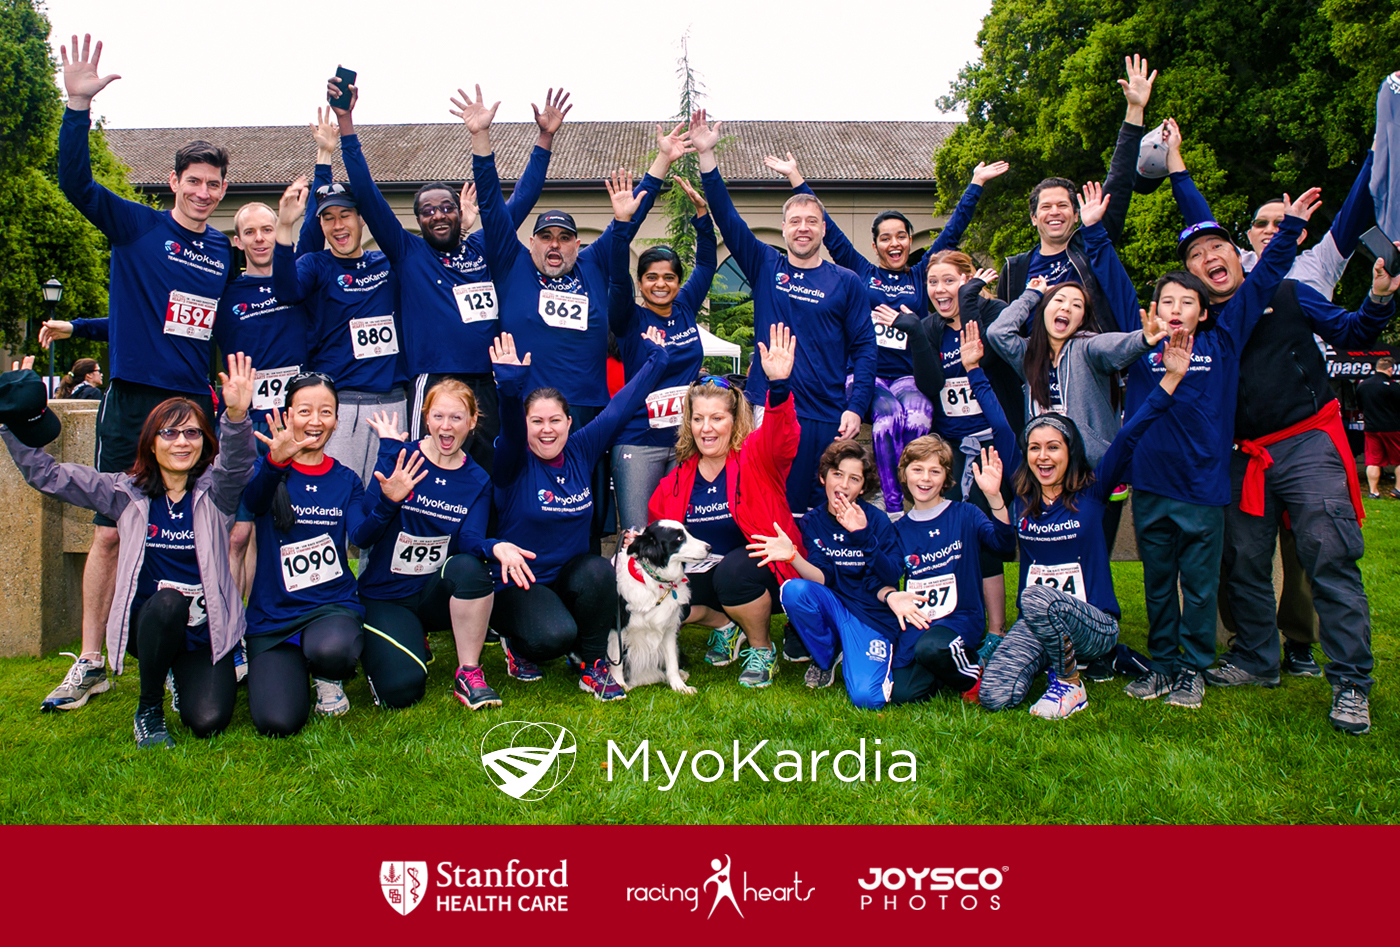 Team MyoKardia Rocks!